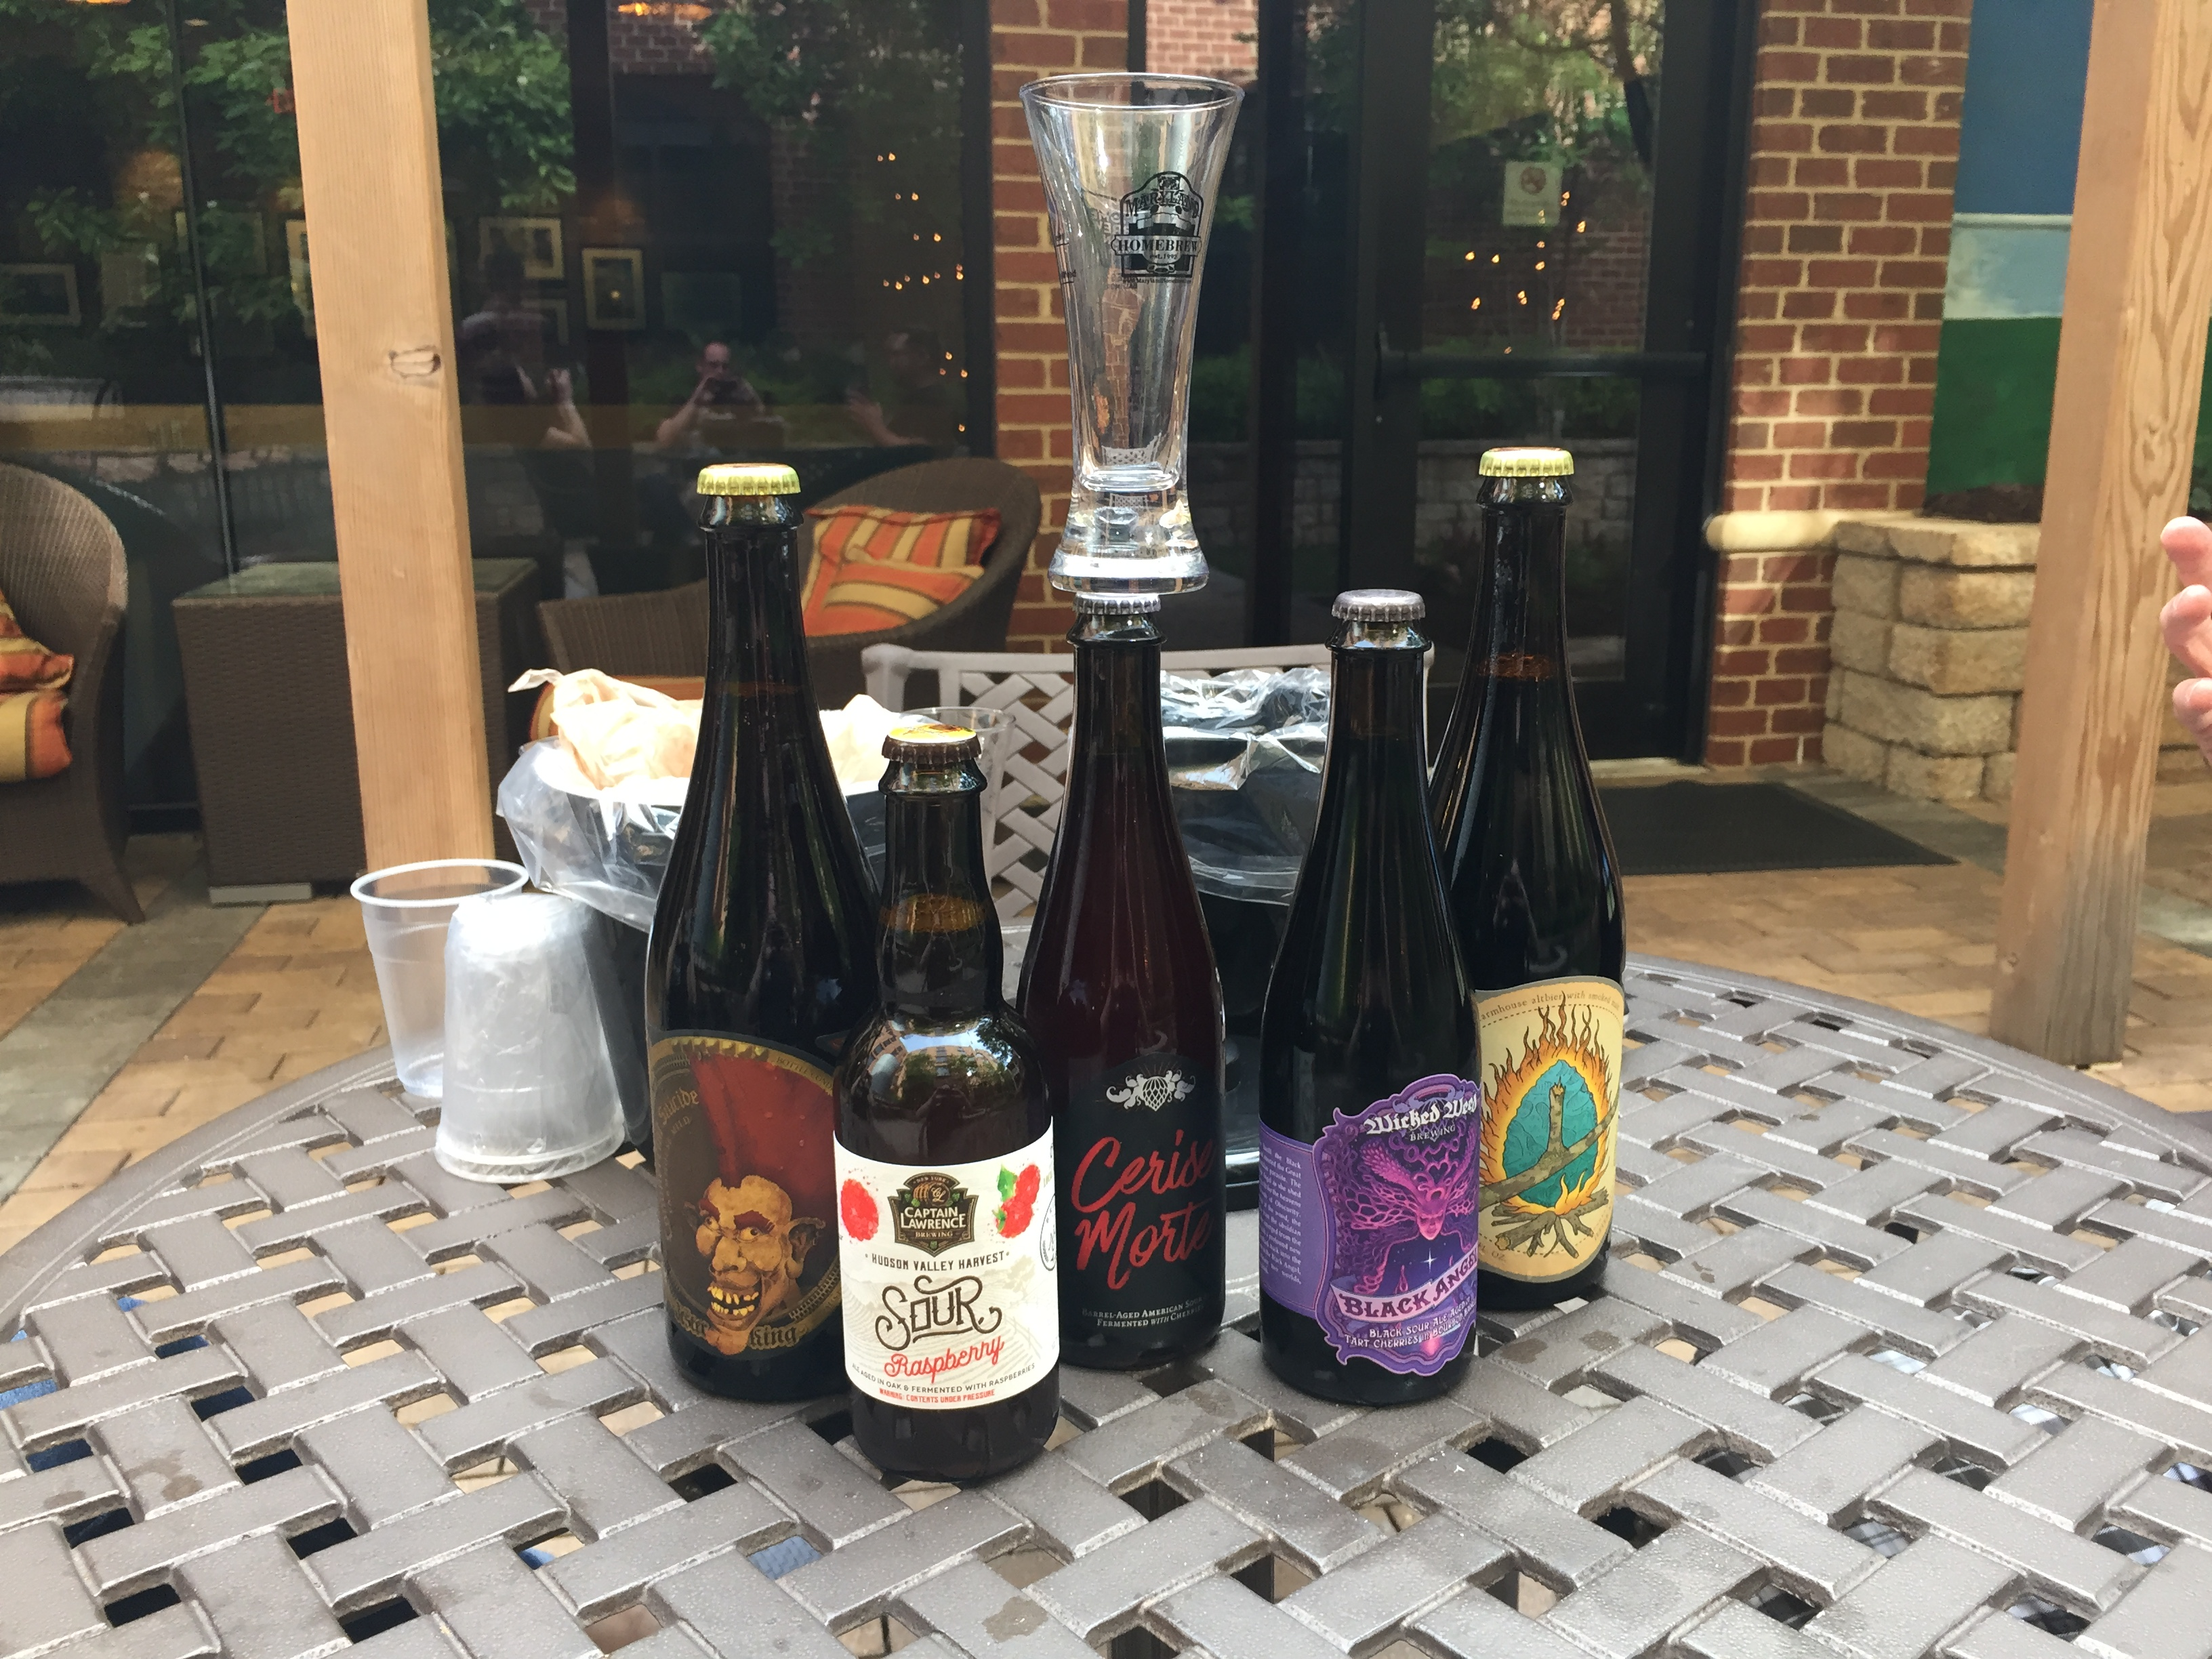 Extracurricular Sour Beer Tasting